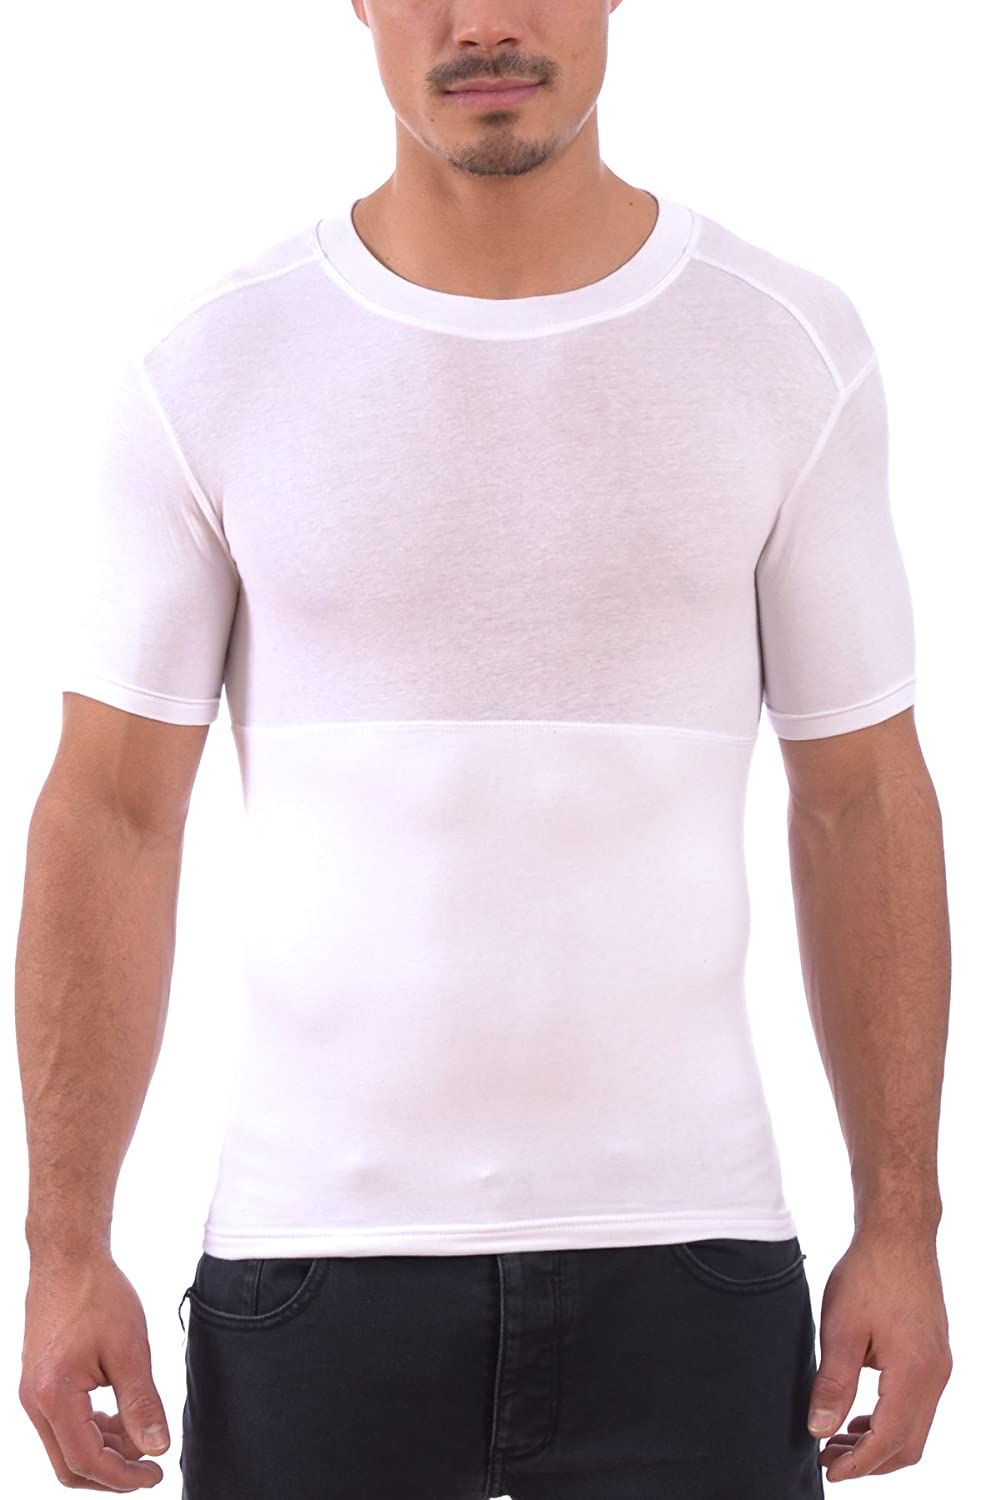 Powerbody Men's Instaslim Shapewear Compression Sculpting Crew Neck T-Shirts MGC_RP22M011-Parent